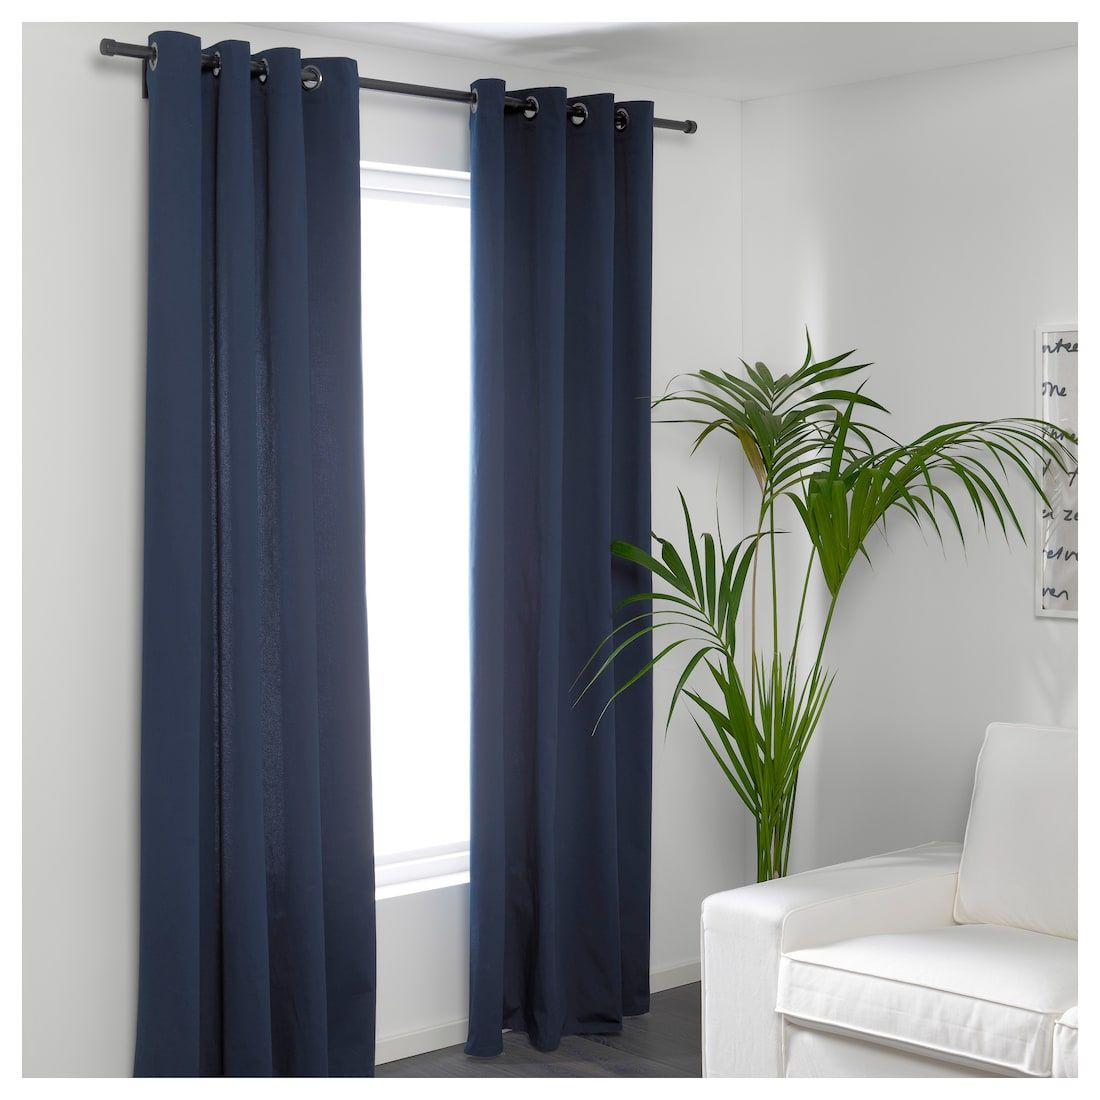 Us Furniture And Home Furnishings Blue Curtains Living Room Living Room Decor Curtains Curtains Living Room